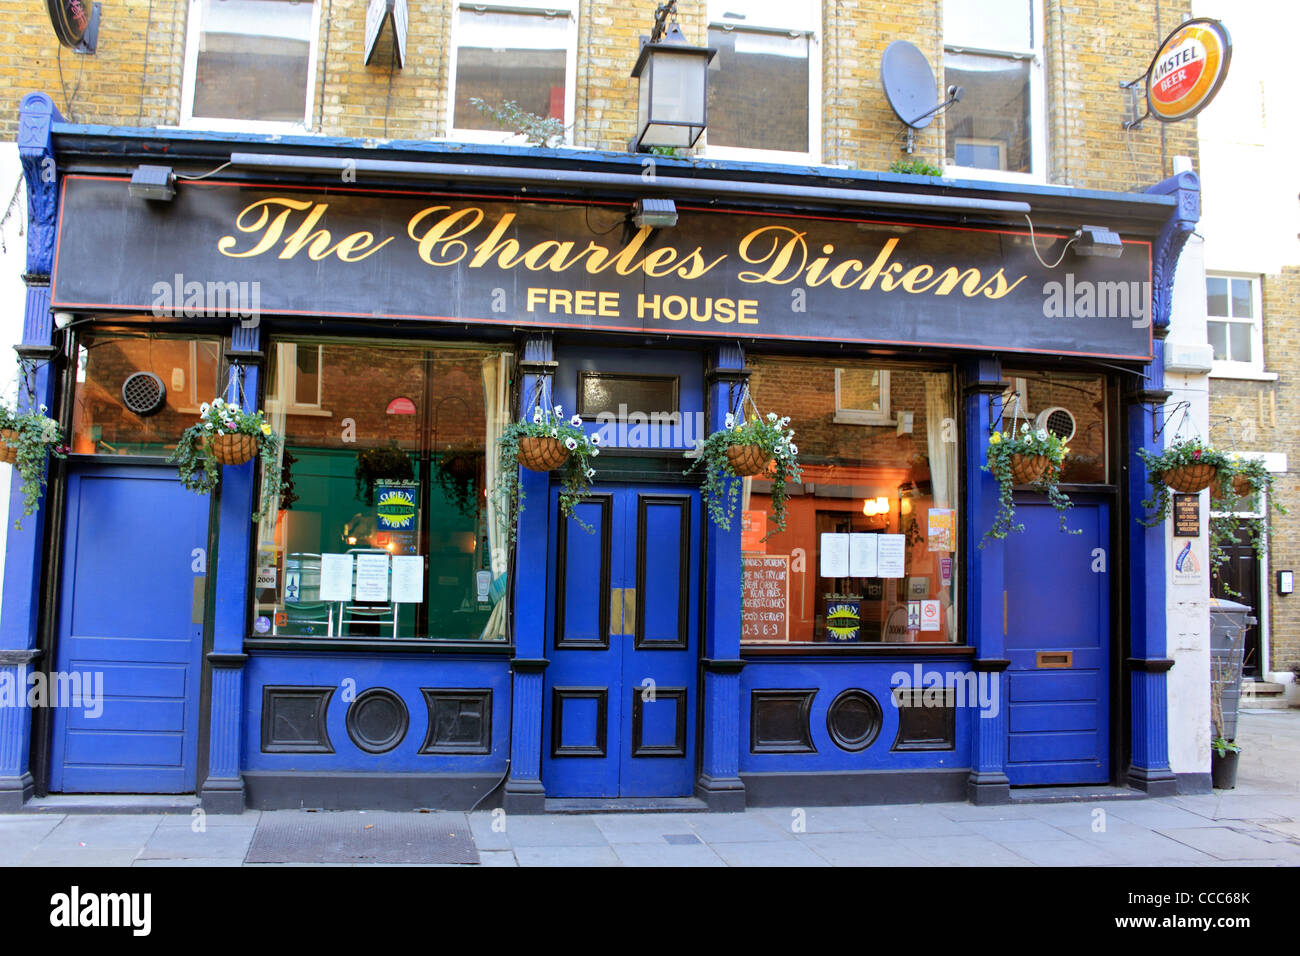 The Charles Dickens Free House Pub London England Uk Stock ...